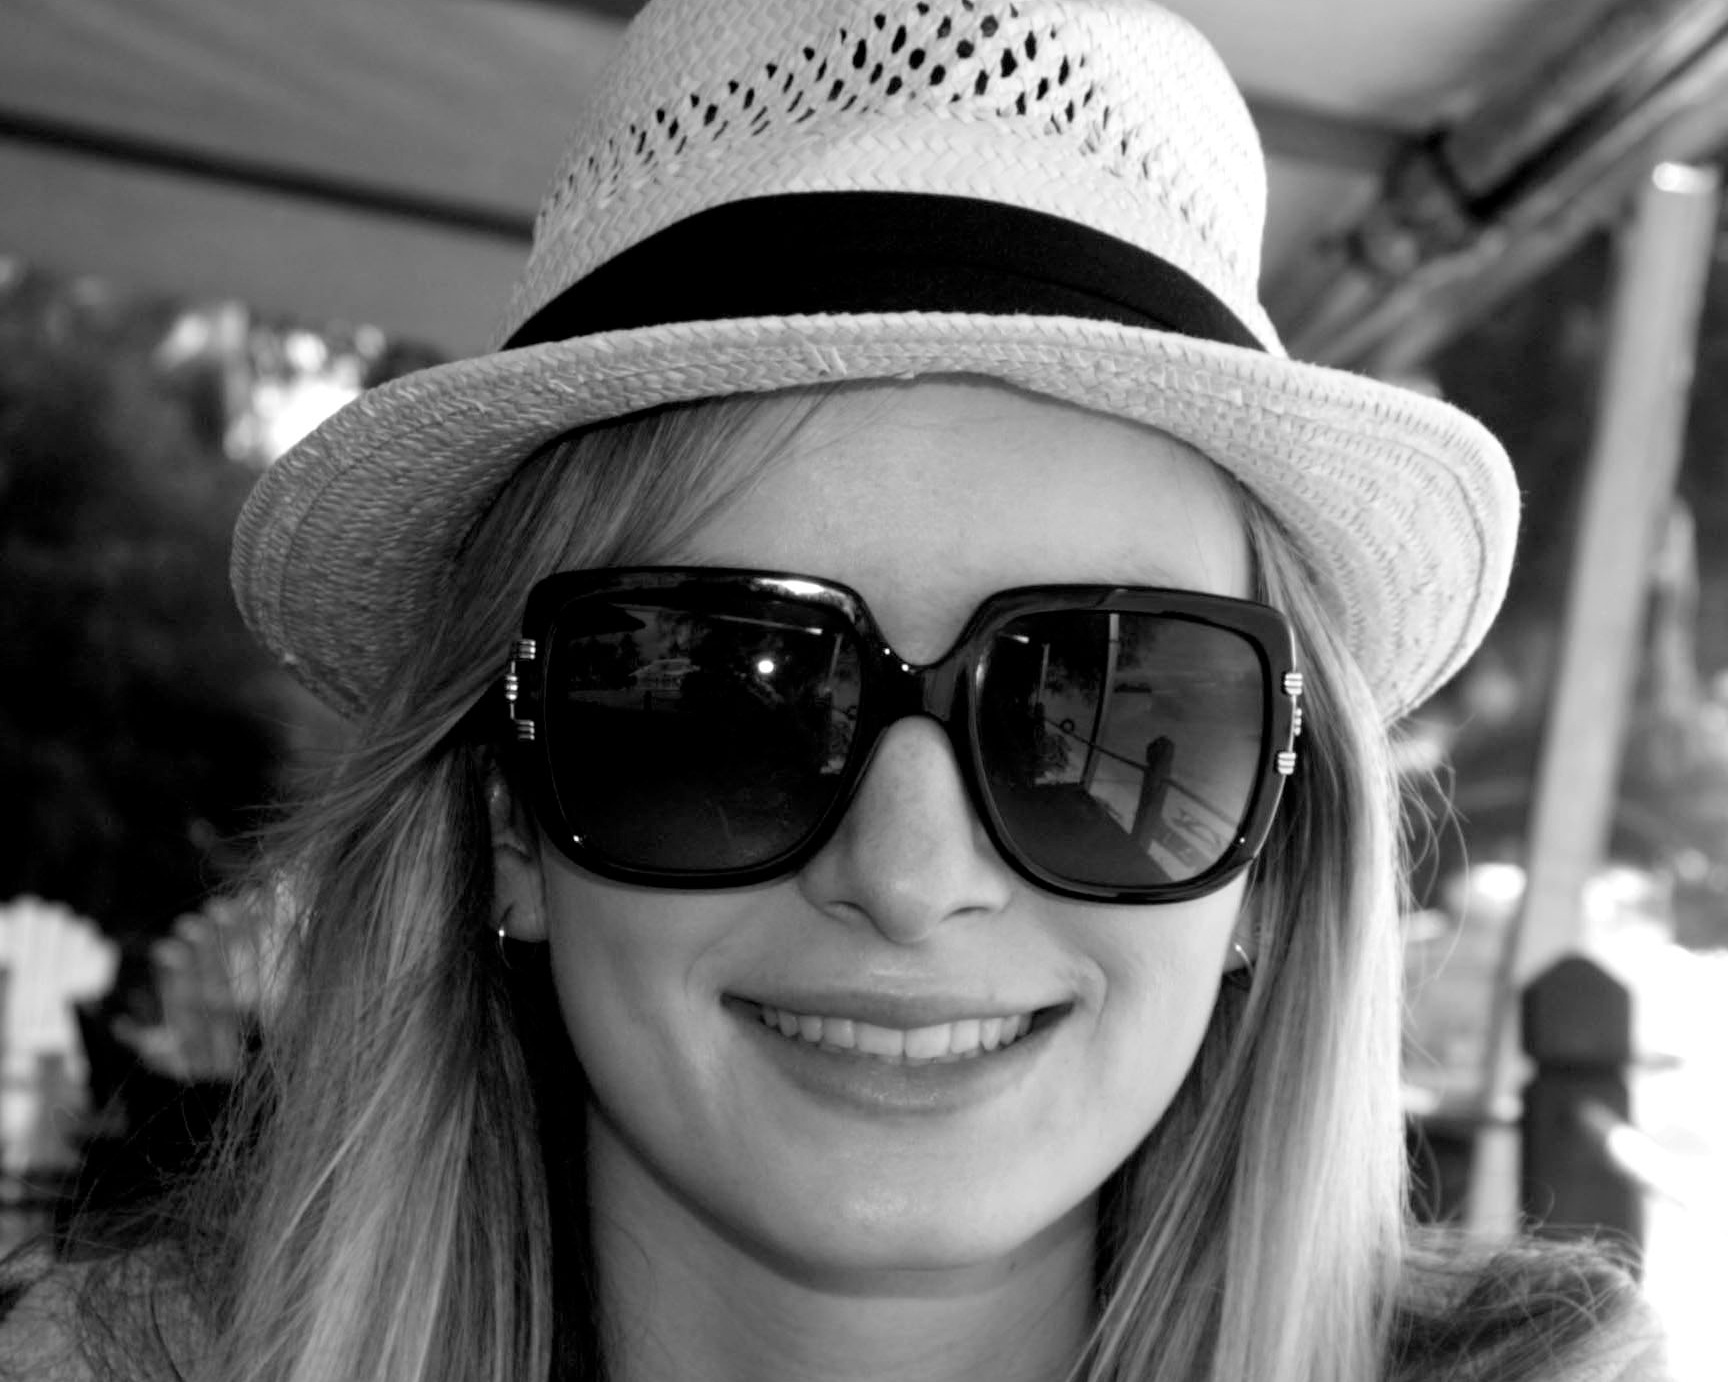 Katie Schraders - Katie is currently completing her PhD investigating Bone Health in Coeliac Disease and Non-Coeliac Gluten Sensitivity. She previously completed a Bachelor of Science in Human Nutrition & Physiology and BSc Honours in Human Nutrition at Massey University in Palmerston North.